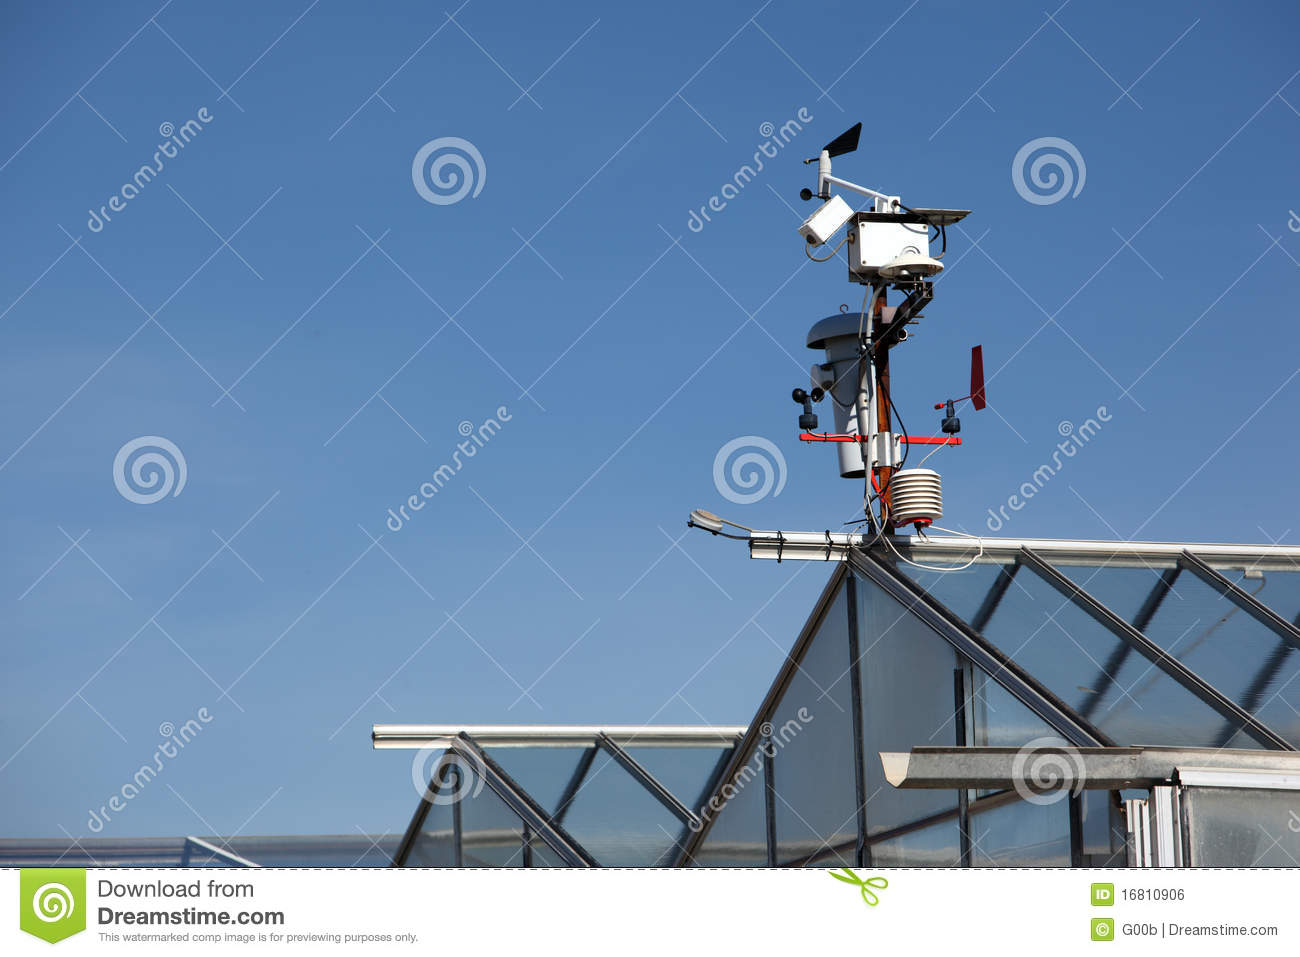 small hitech meteo station with anemometers stock photo image of climatology meteo 16810906. Black Bedroom Furniture Sets. Home Design Ideas